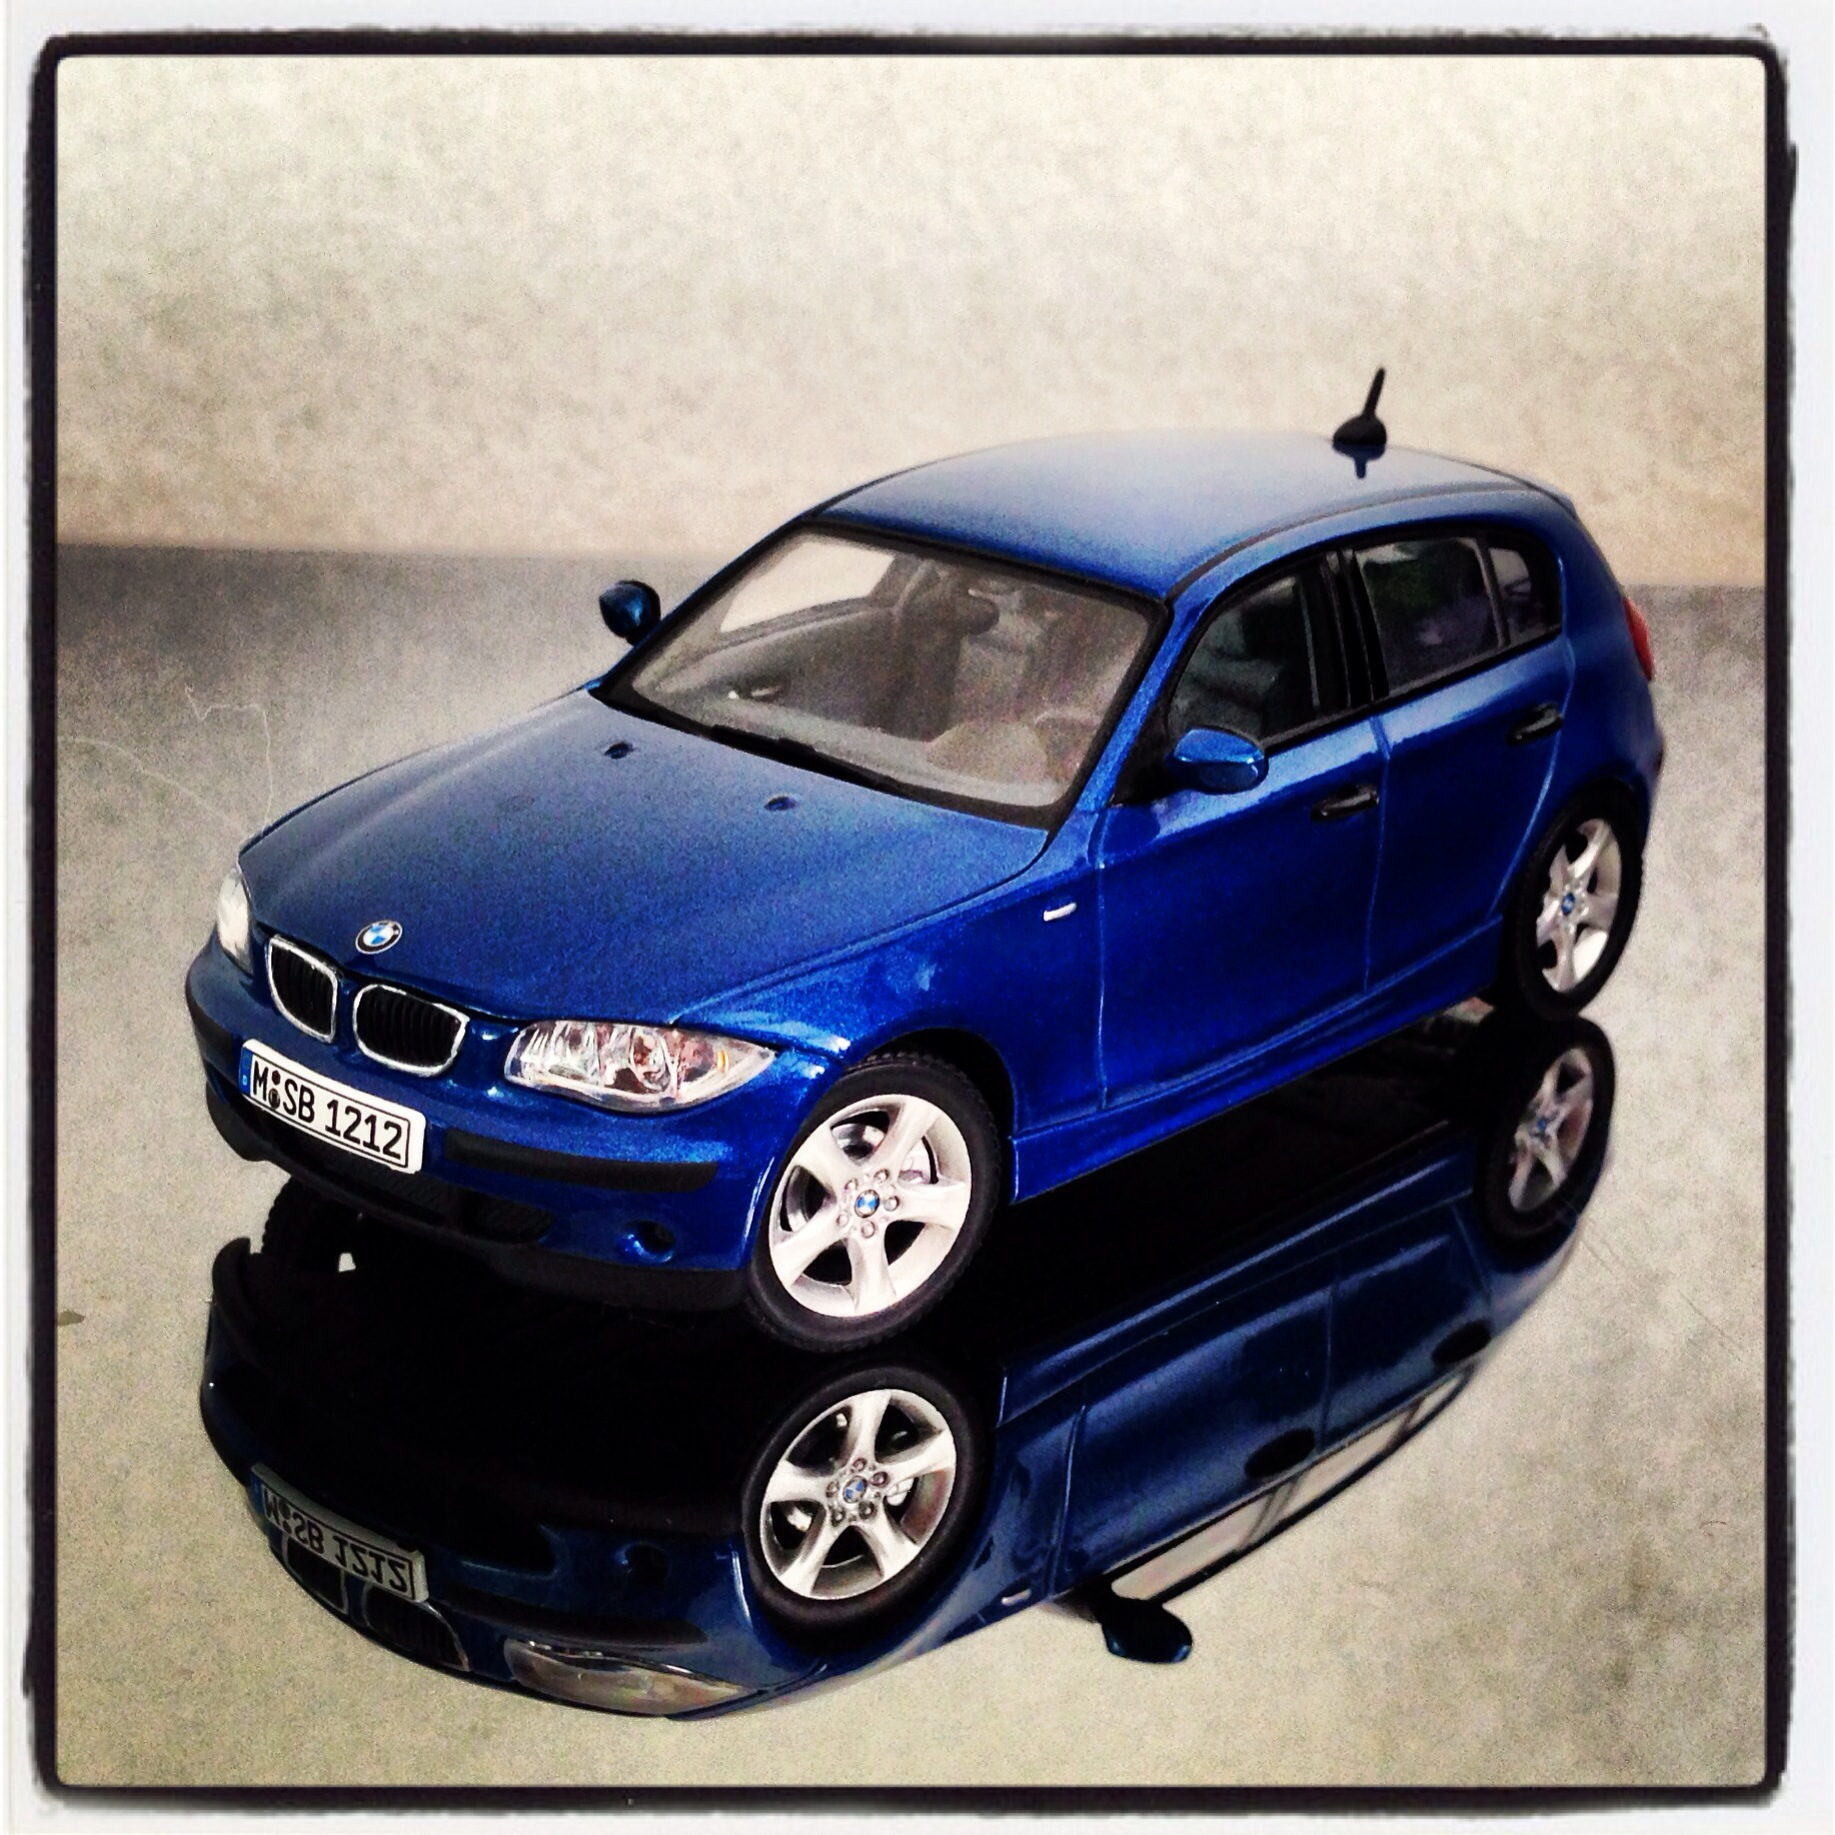 BMW 1 series 5drs (E87) blue (autoart)